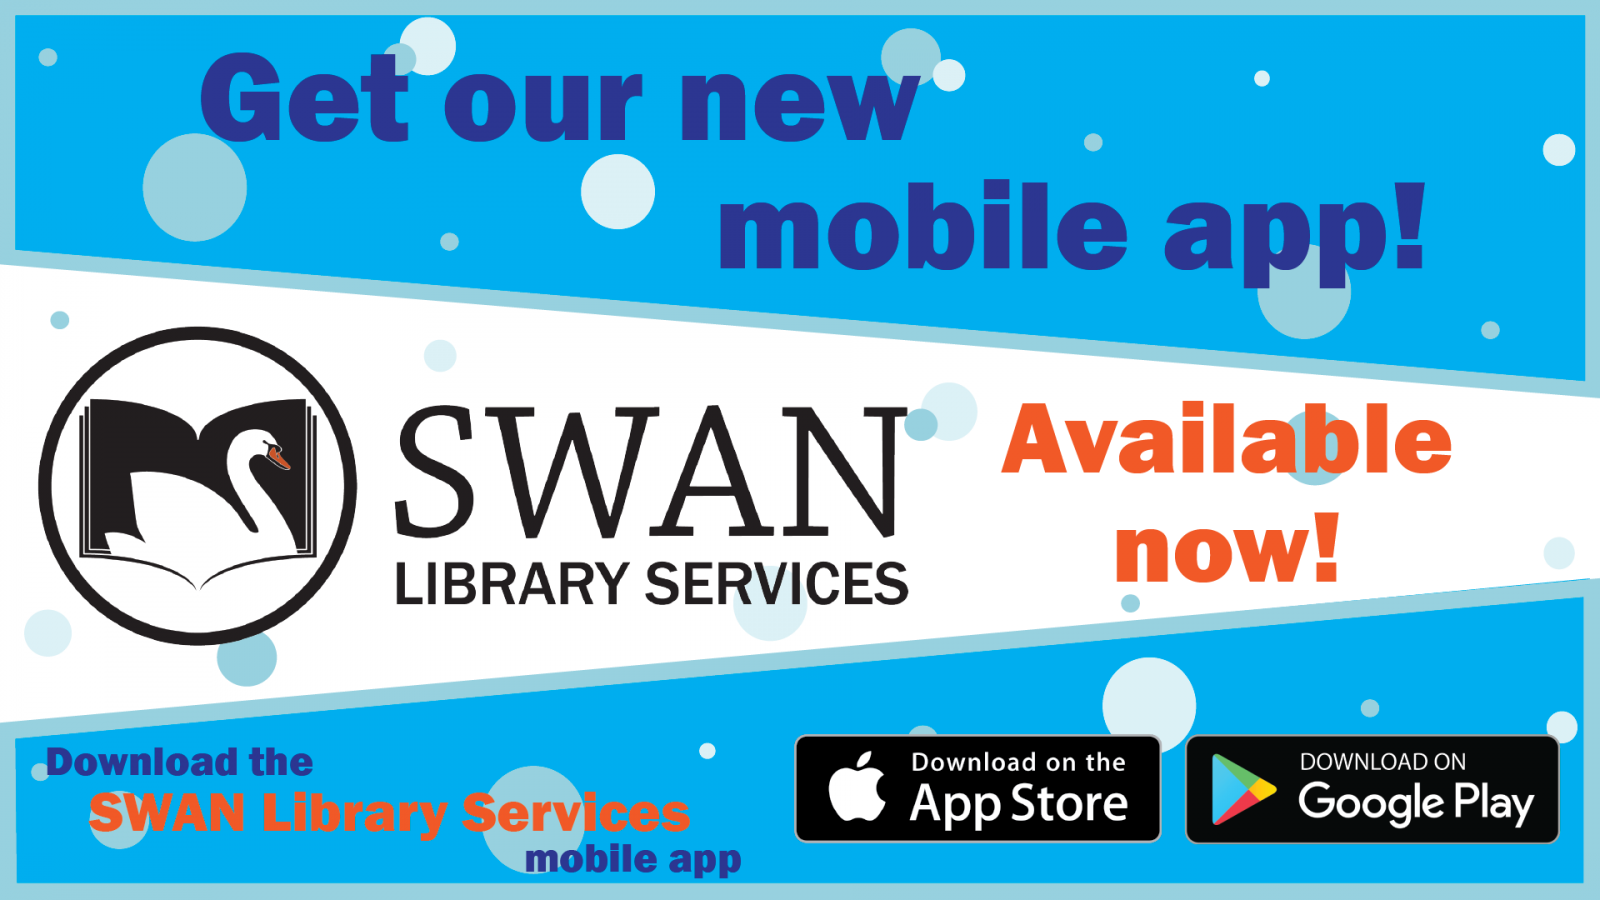 Try our new mobile app!